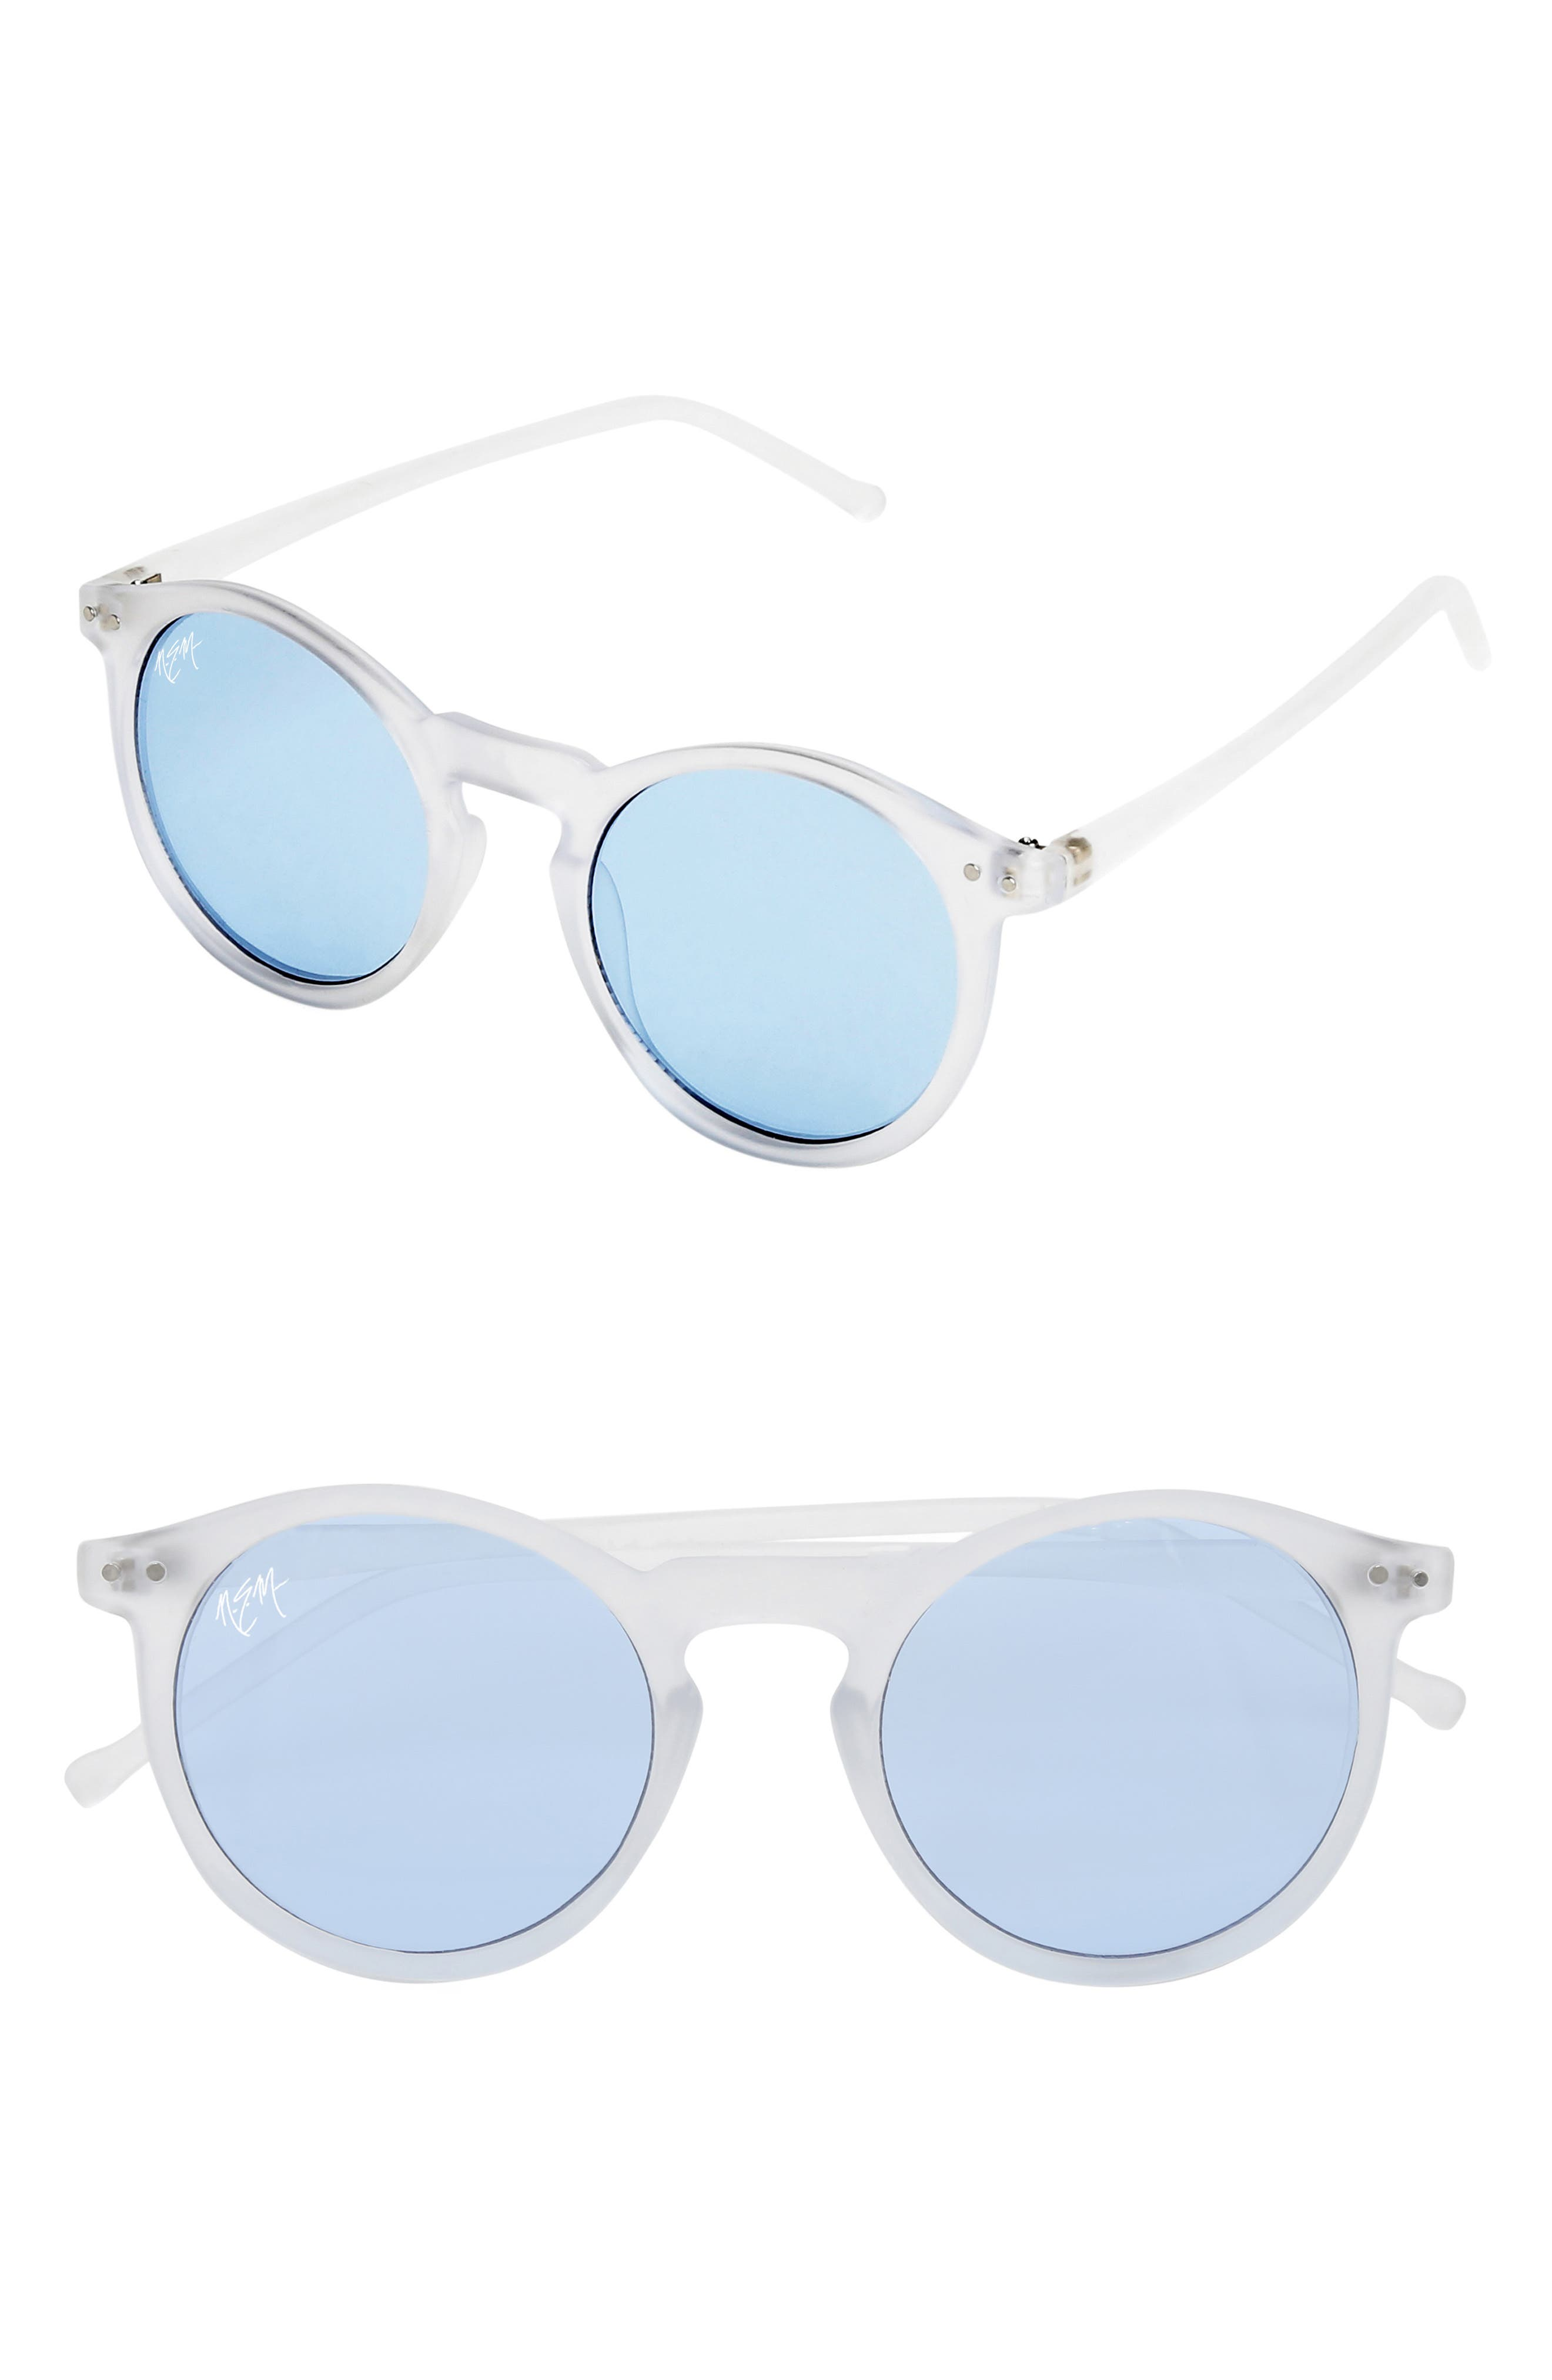 50mm Mirrored Round Sunglasses,                         Main,                         color, CLEAR SKY BLUE/ BLUE TINT